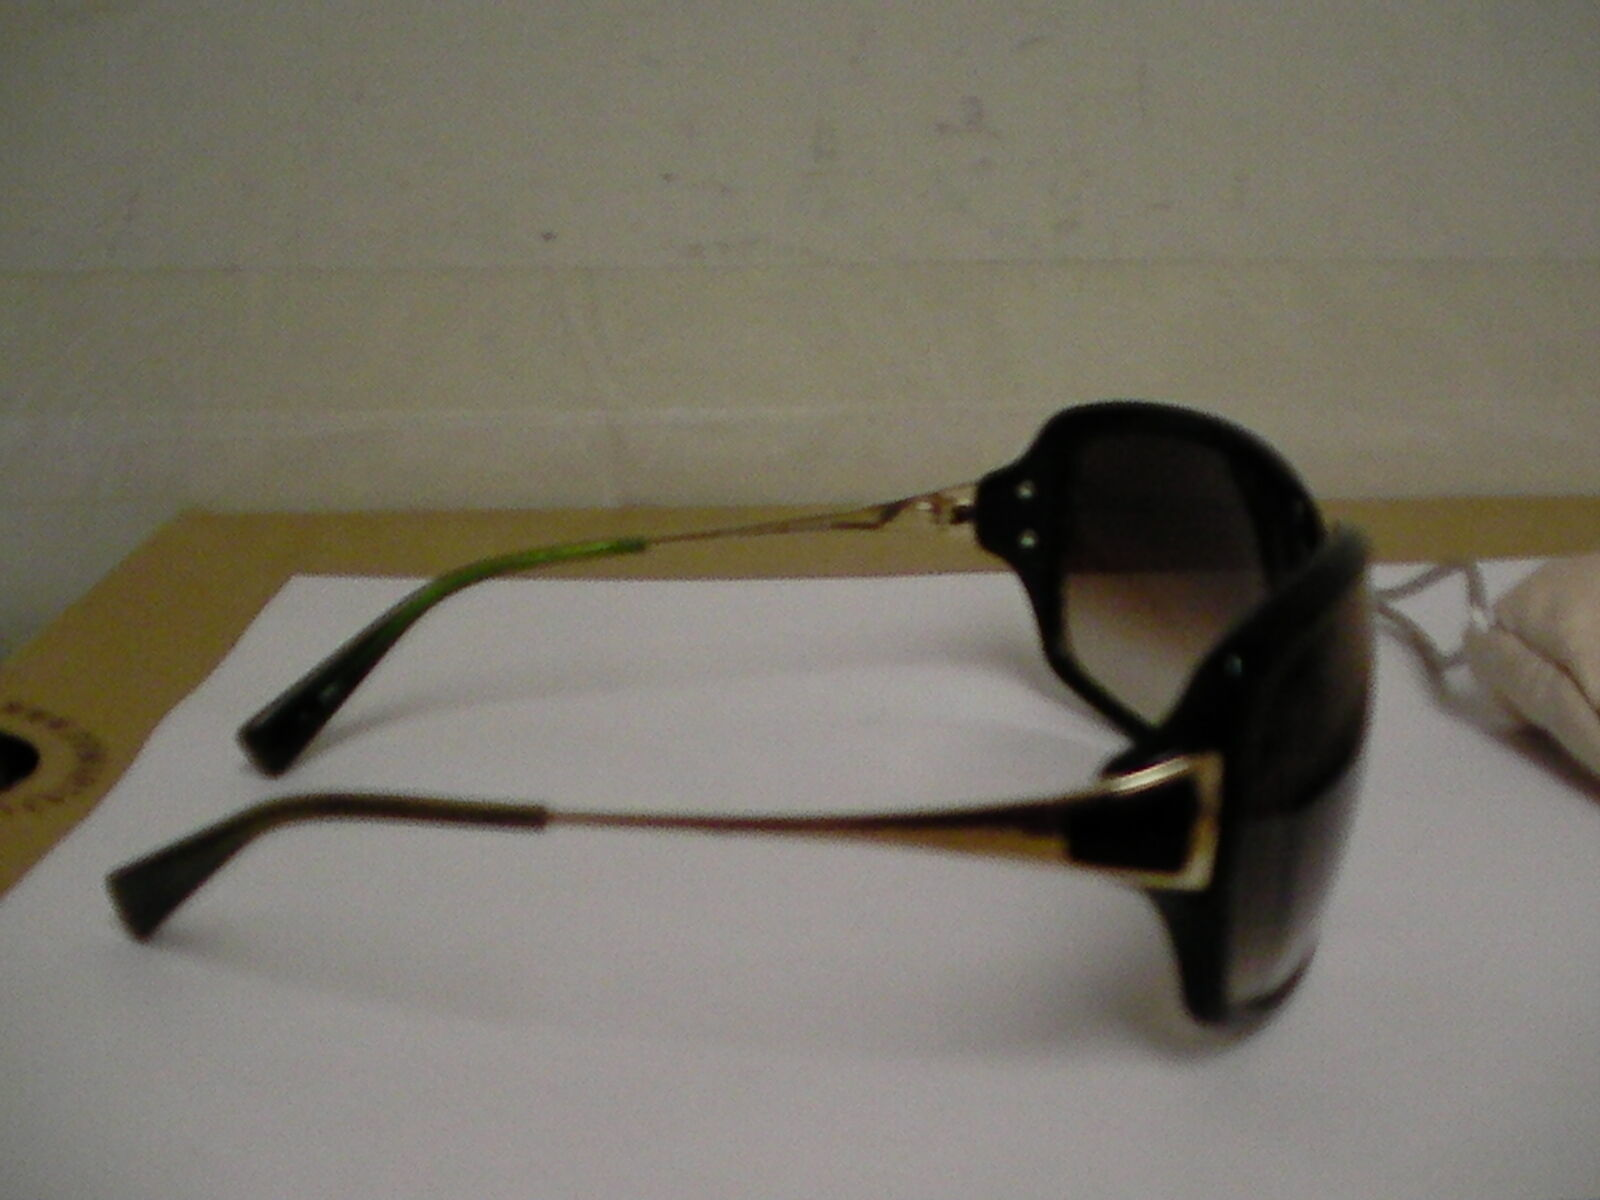 Oliver peoples new sunglasses womens dulaine 61/17 brown lenses made in japan image 3